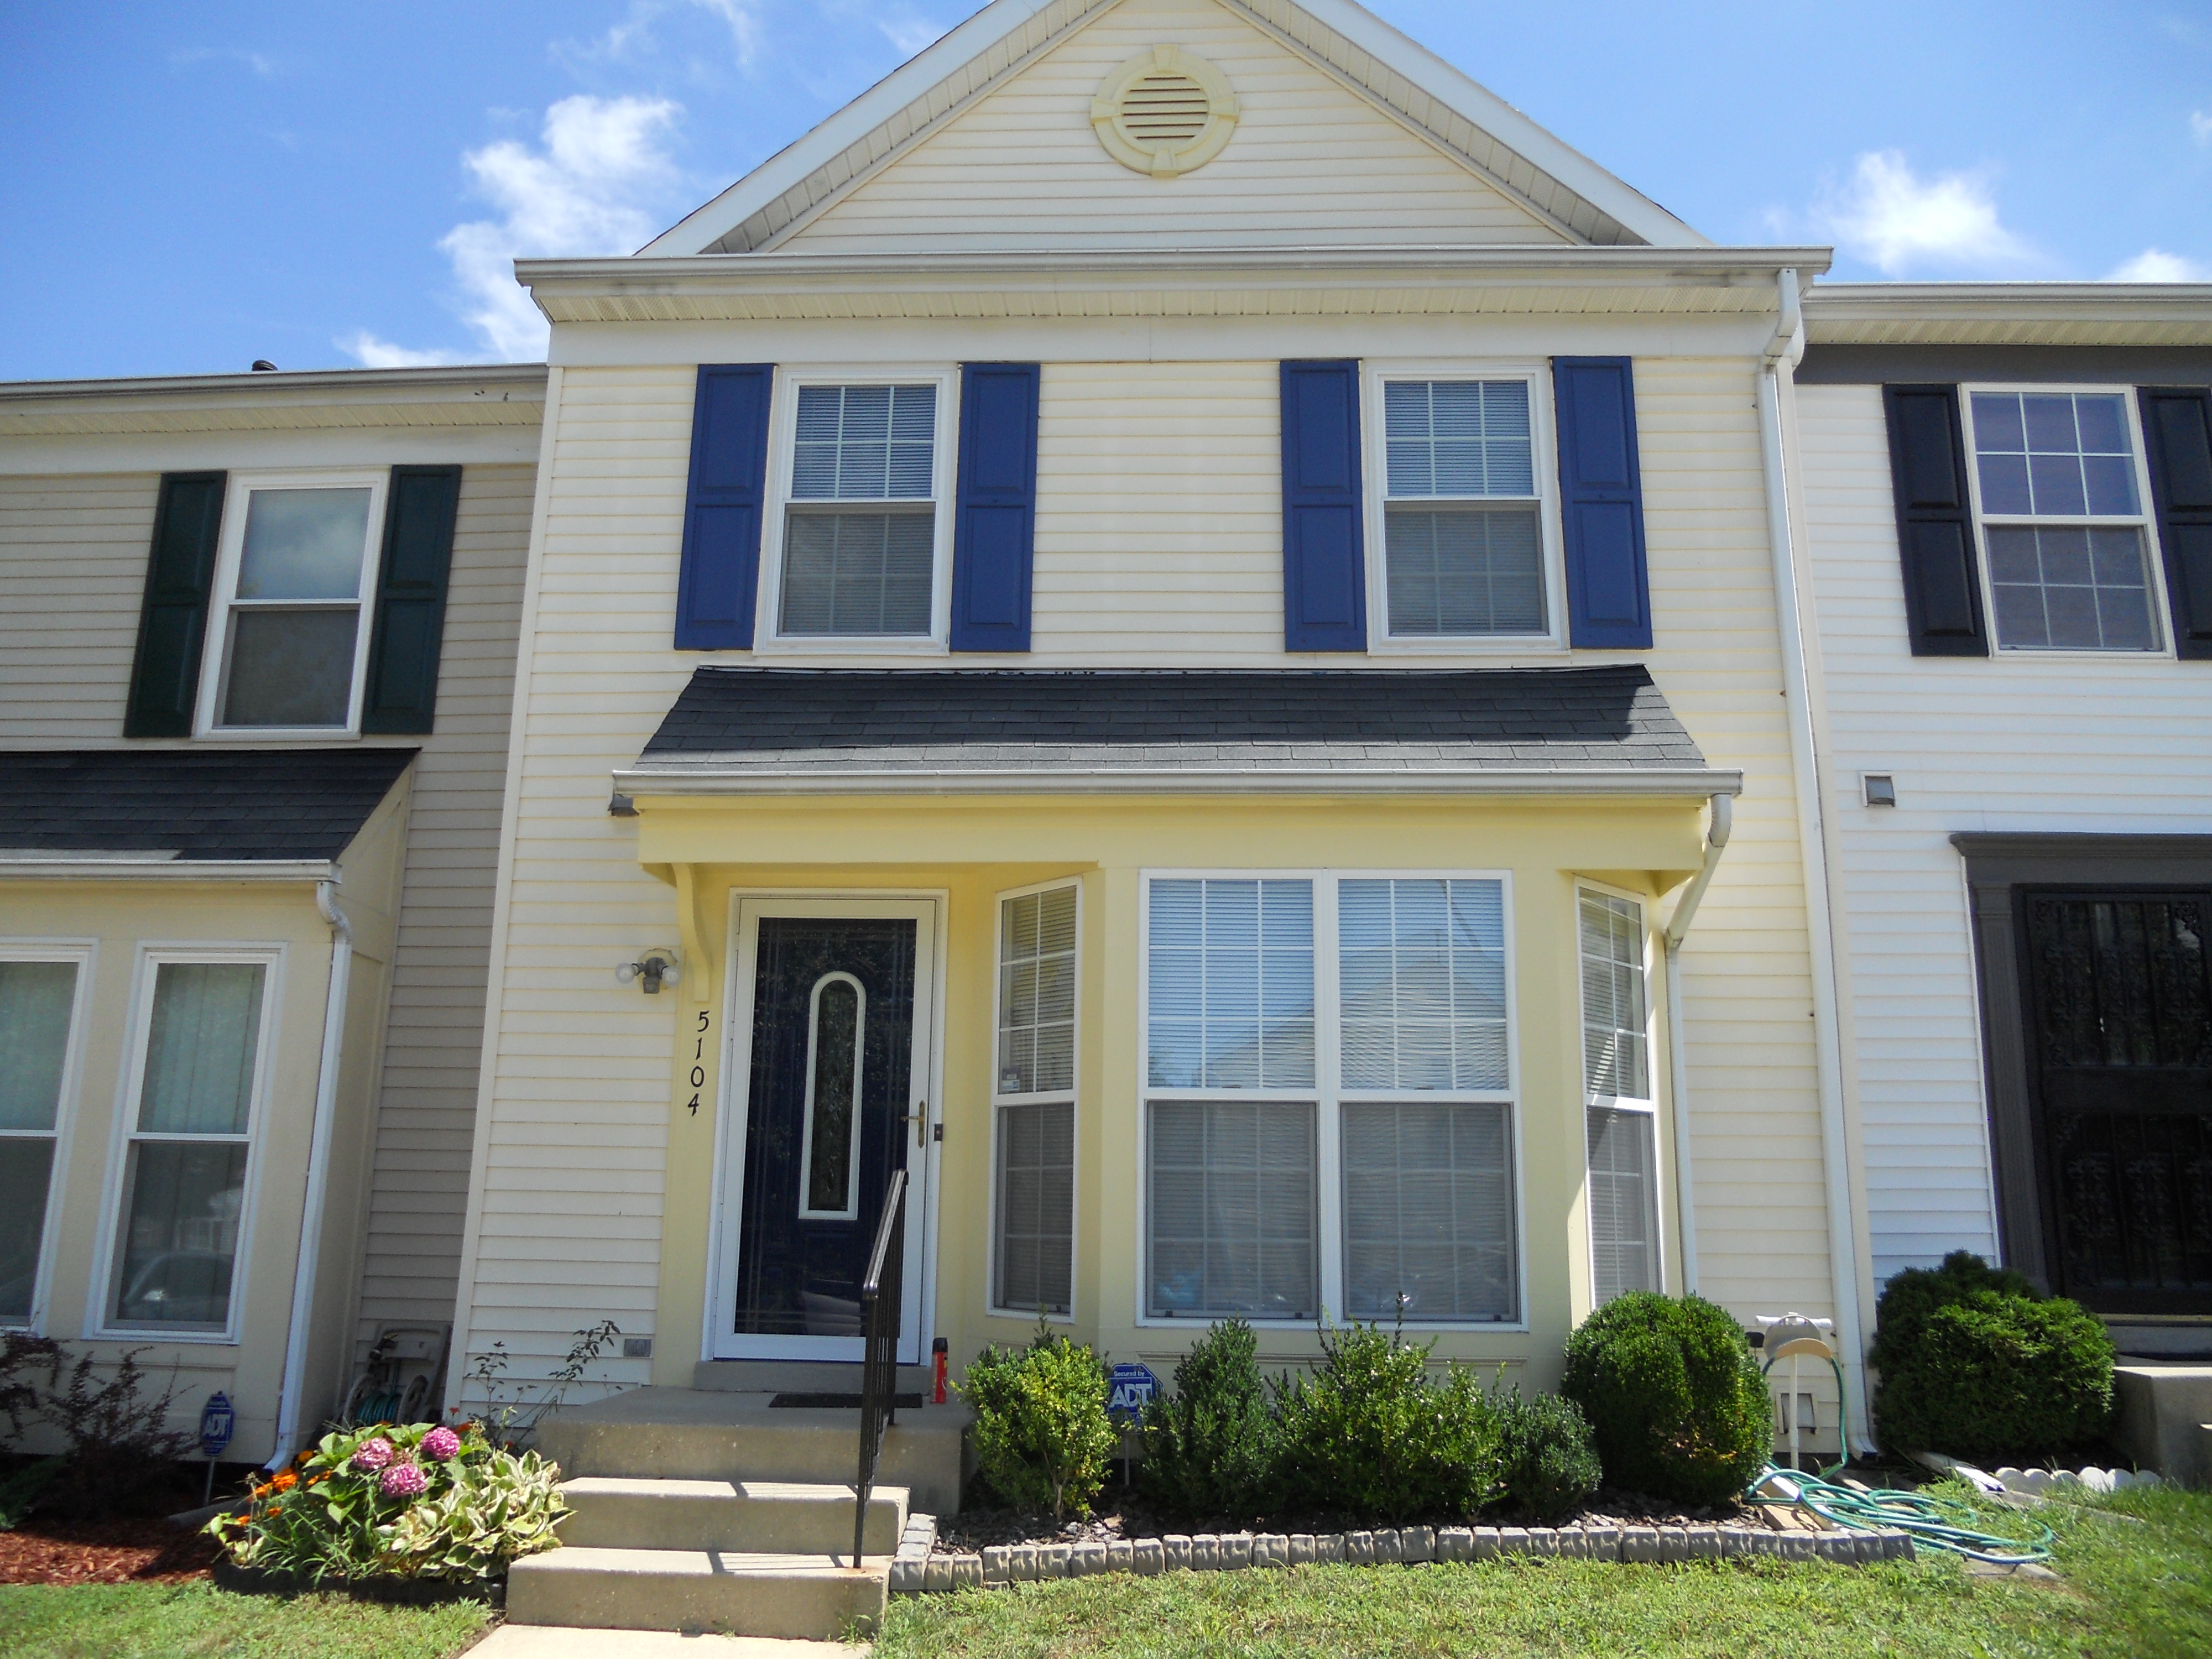 Townhouse for Rent in District Heights